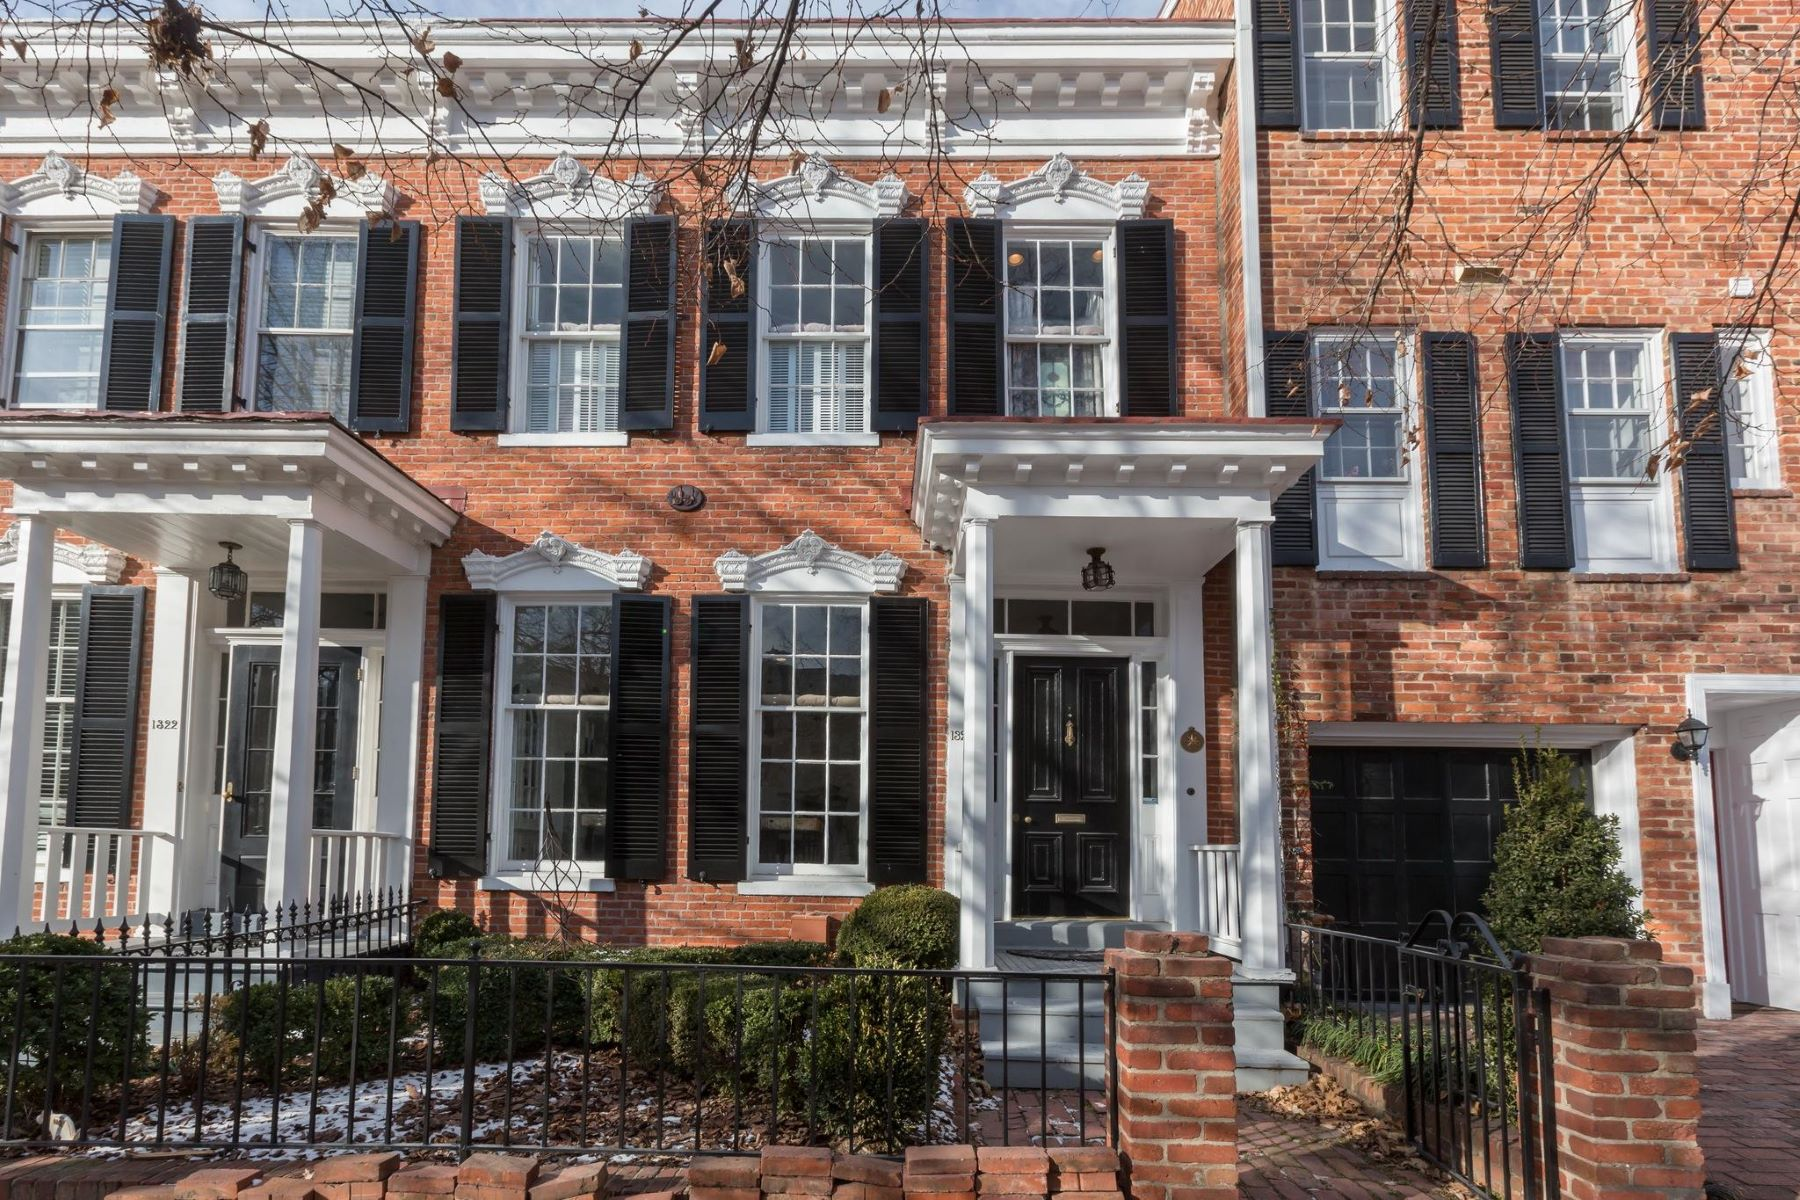 Townhouse for Rent at 1324 30th St Nw 1324 30th St Nw Washington, District Of Columbia 20007 United States